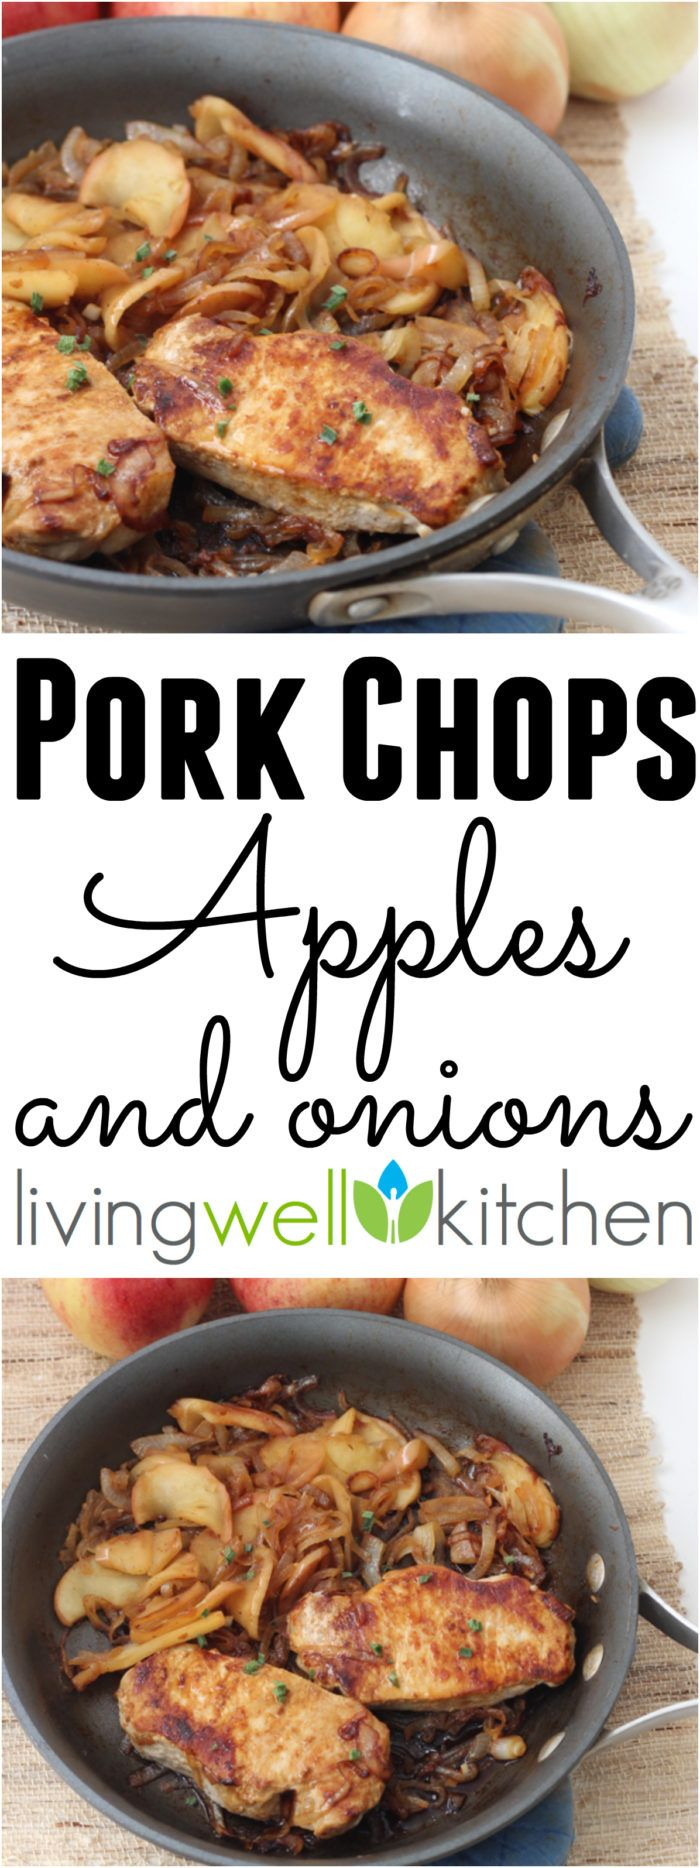 An easy one skillet meal that packs in the fall flavor with sweet caramelized onions and apples to balance out the savory pork. Pork Chops, Apples and Onions recipe is a healthy, gluten free, dairy free dinner idea